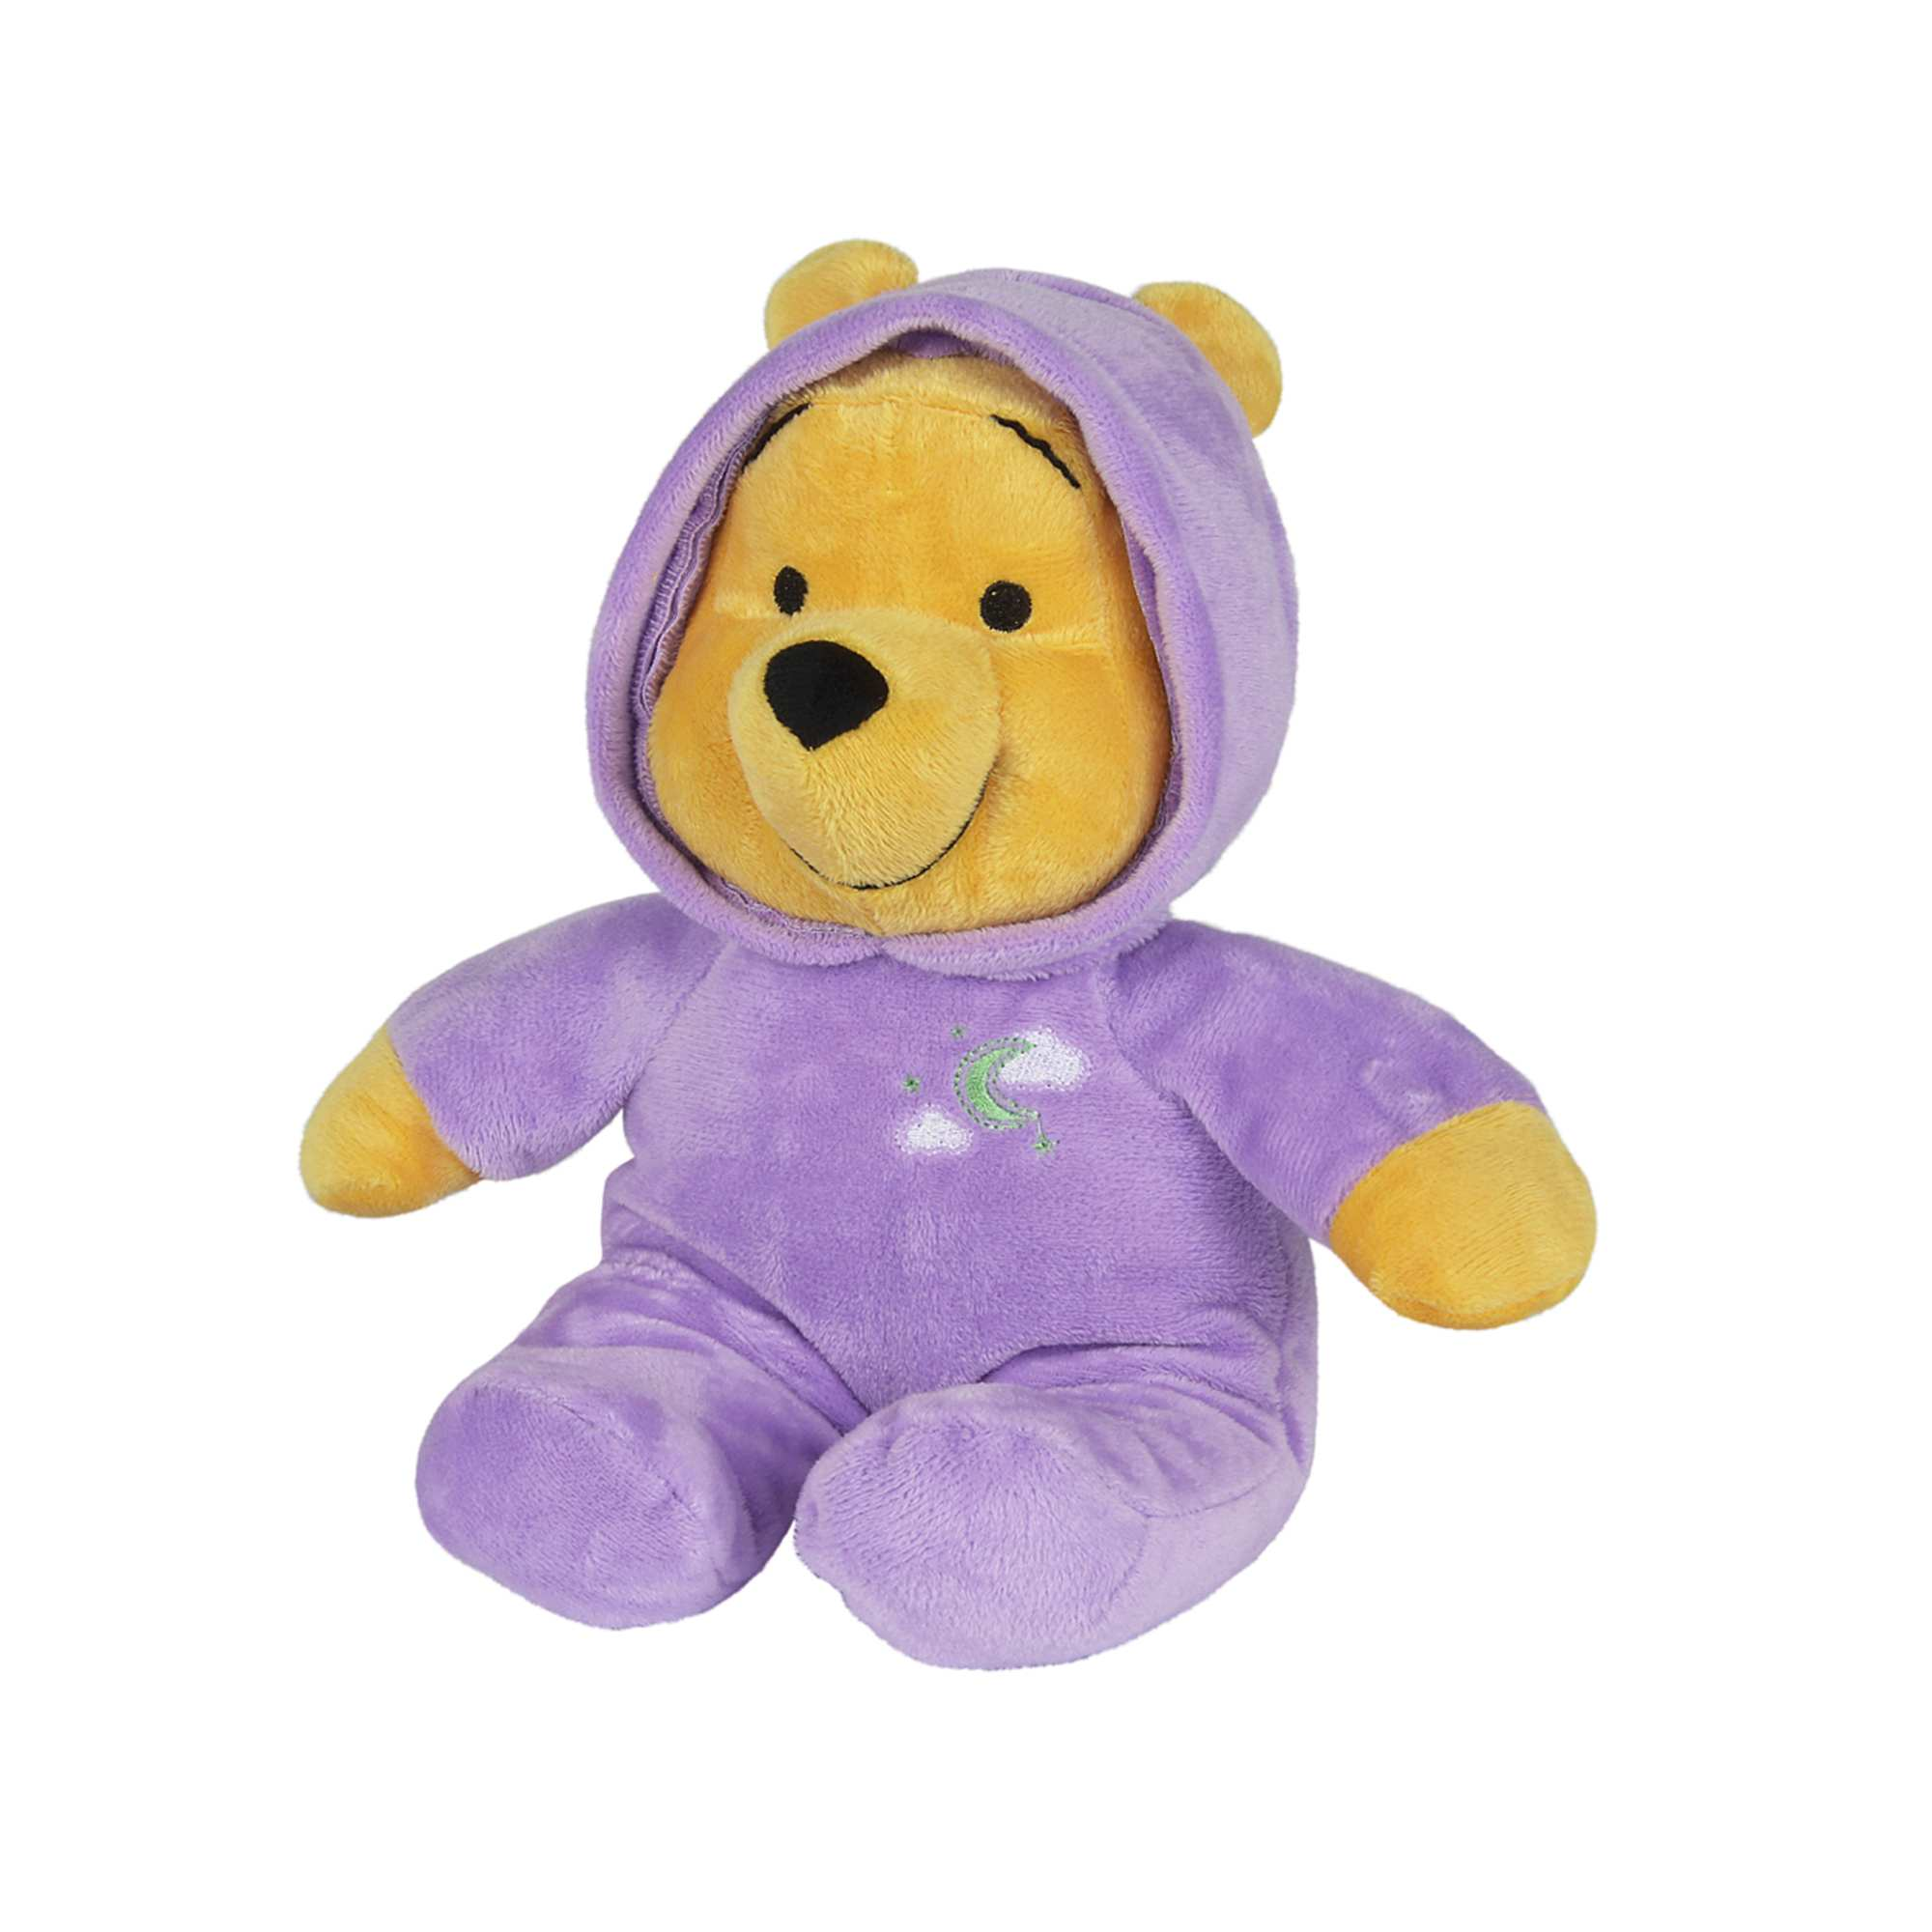 peluche lumineuse 39 winnie l 39 ourson 39 39 disney baby 39 fille violet kiabi 15 00. Black Bedroom Furniture Sets. Home Design Ideas